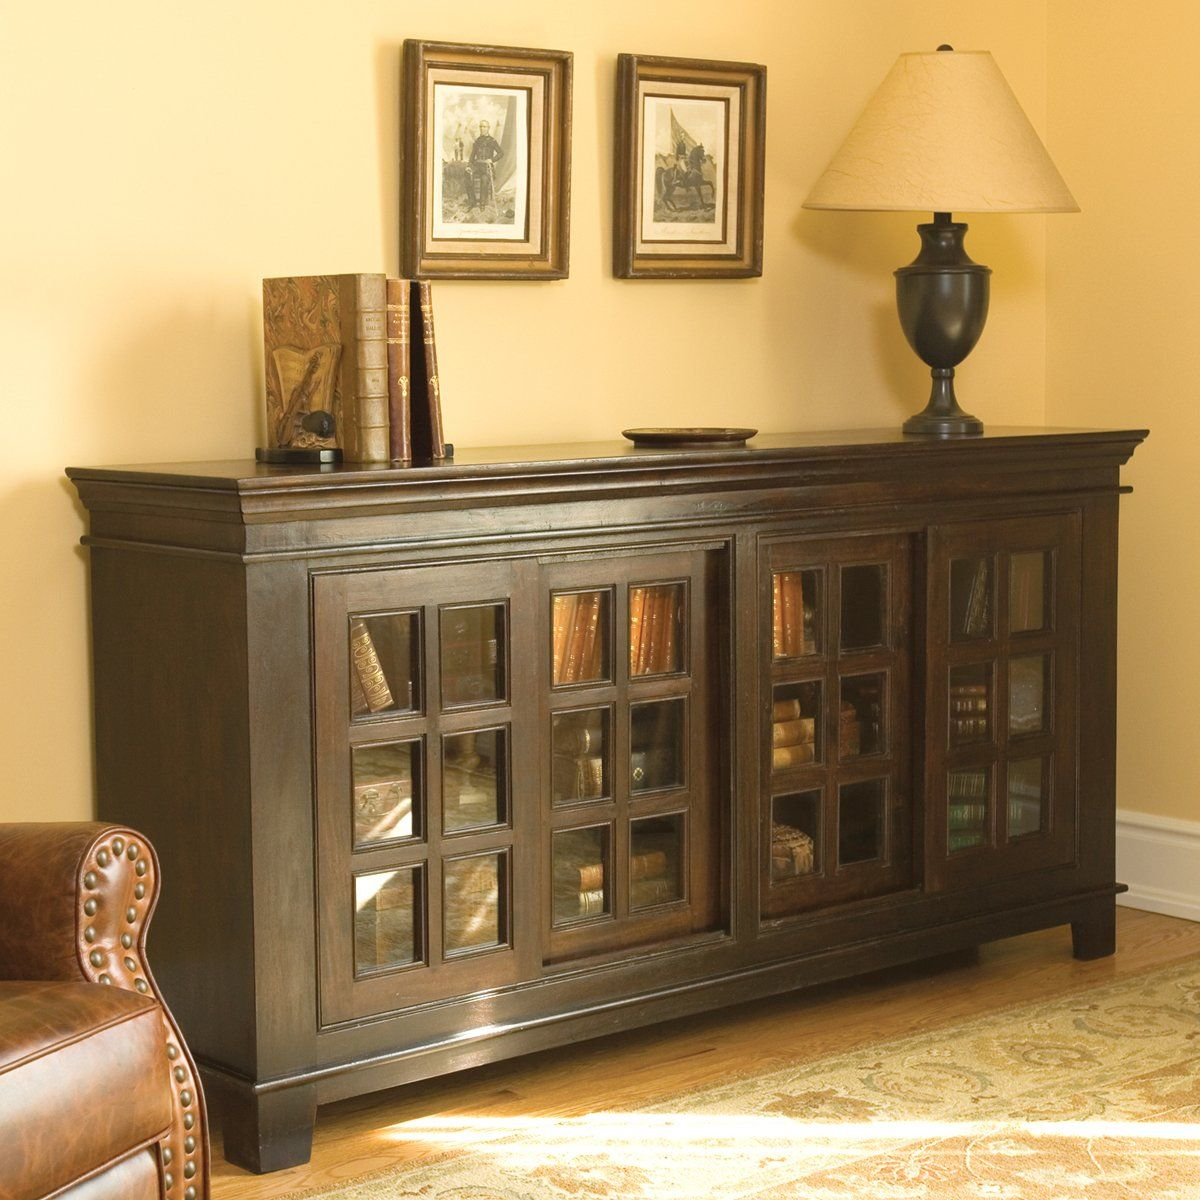 Dining Room Consoles: Classic Home 52001086 Carmel Sliding Buffet Sideboard